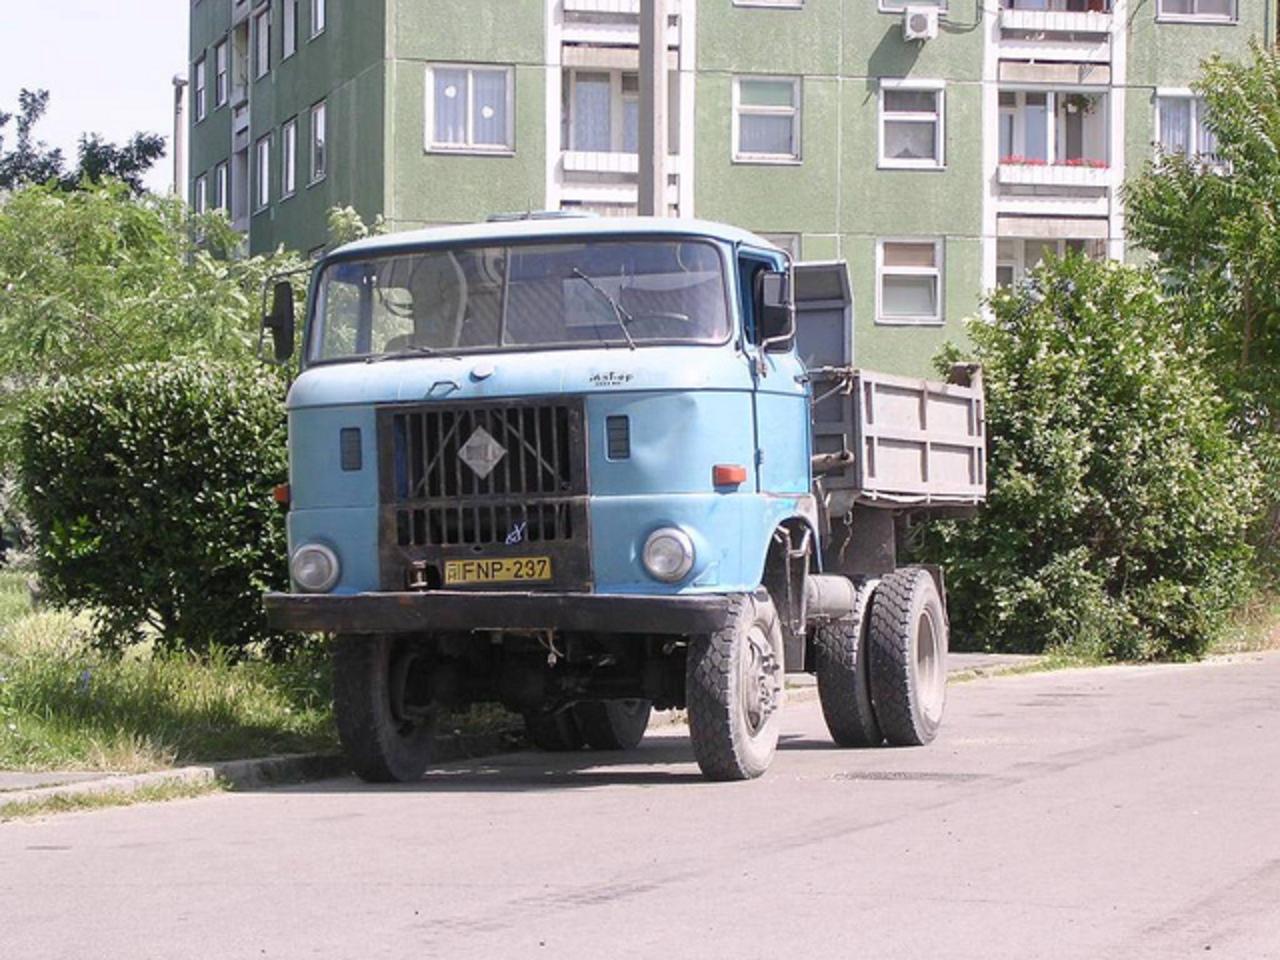 IFA W50 Szeged Hungary June 2005 f | Flickr - Photo Sharing!